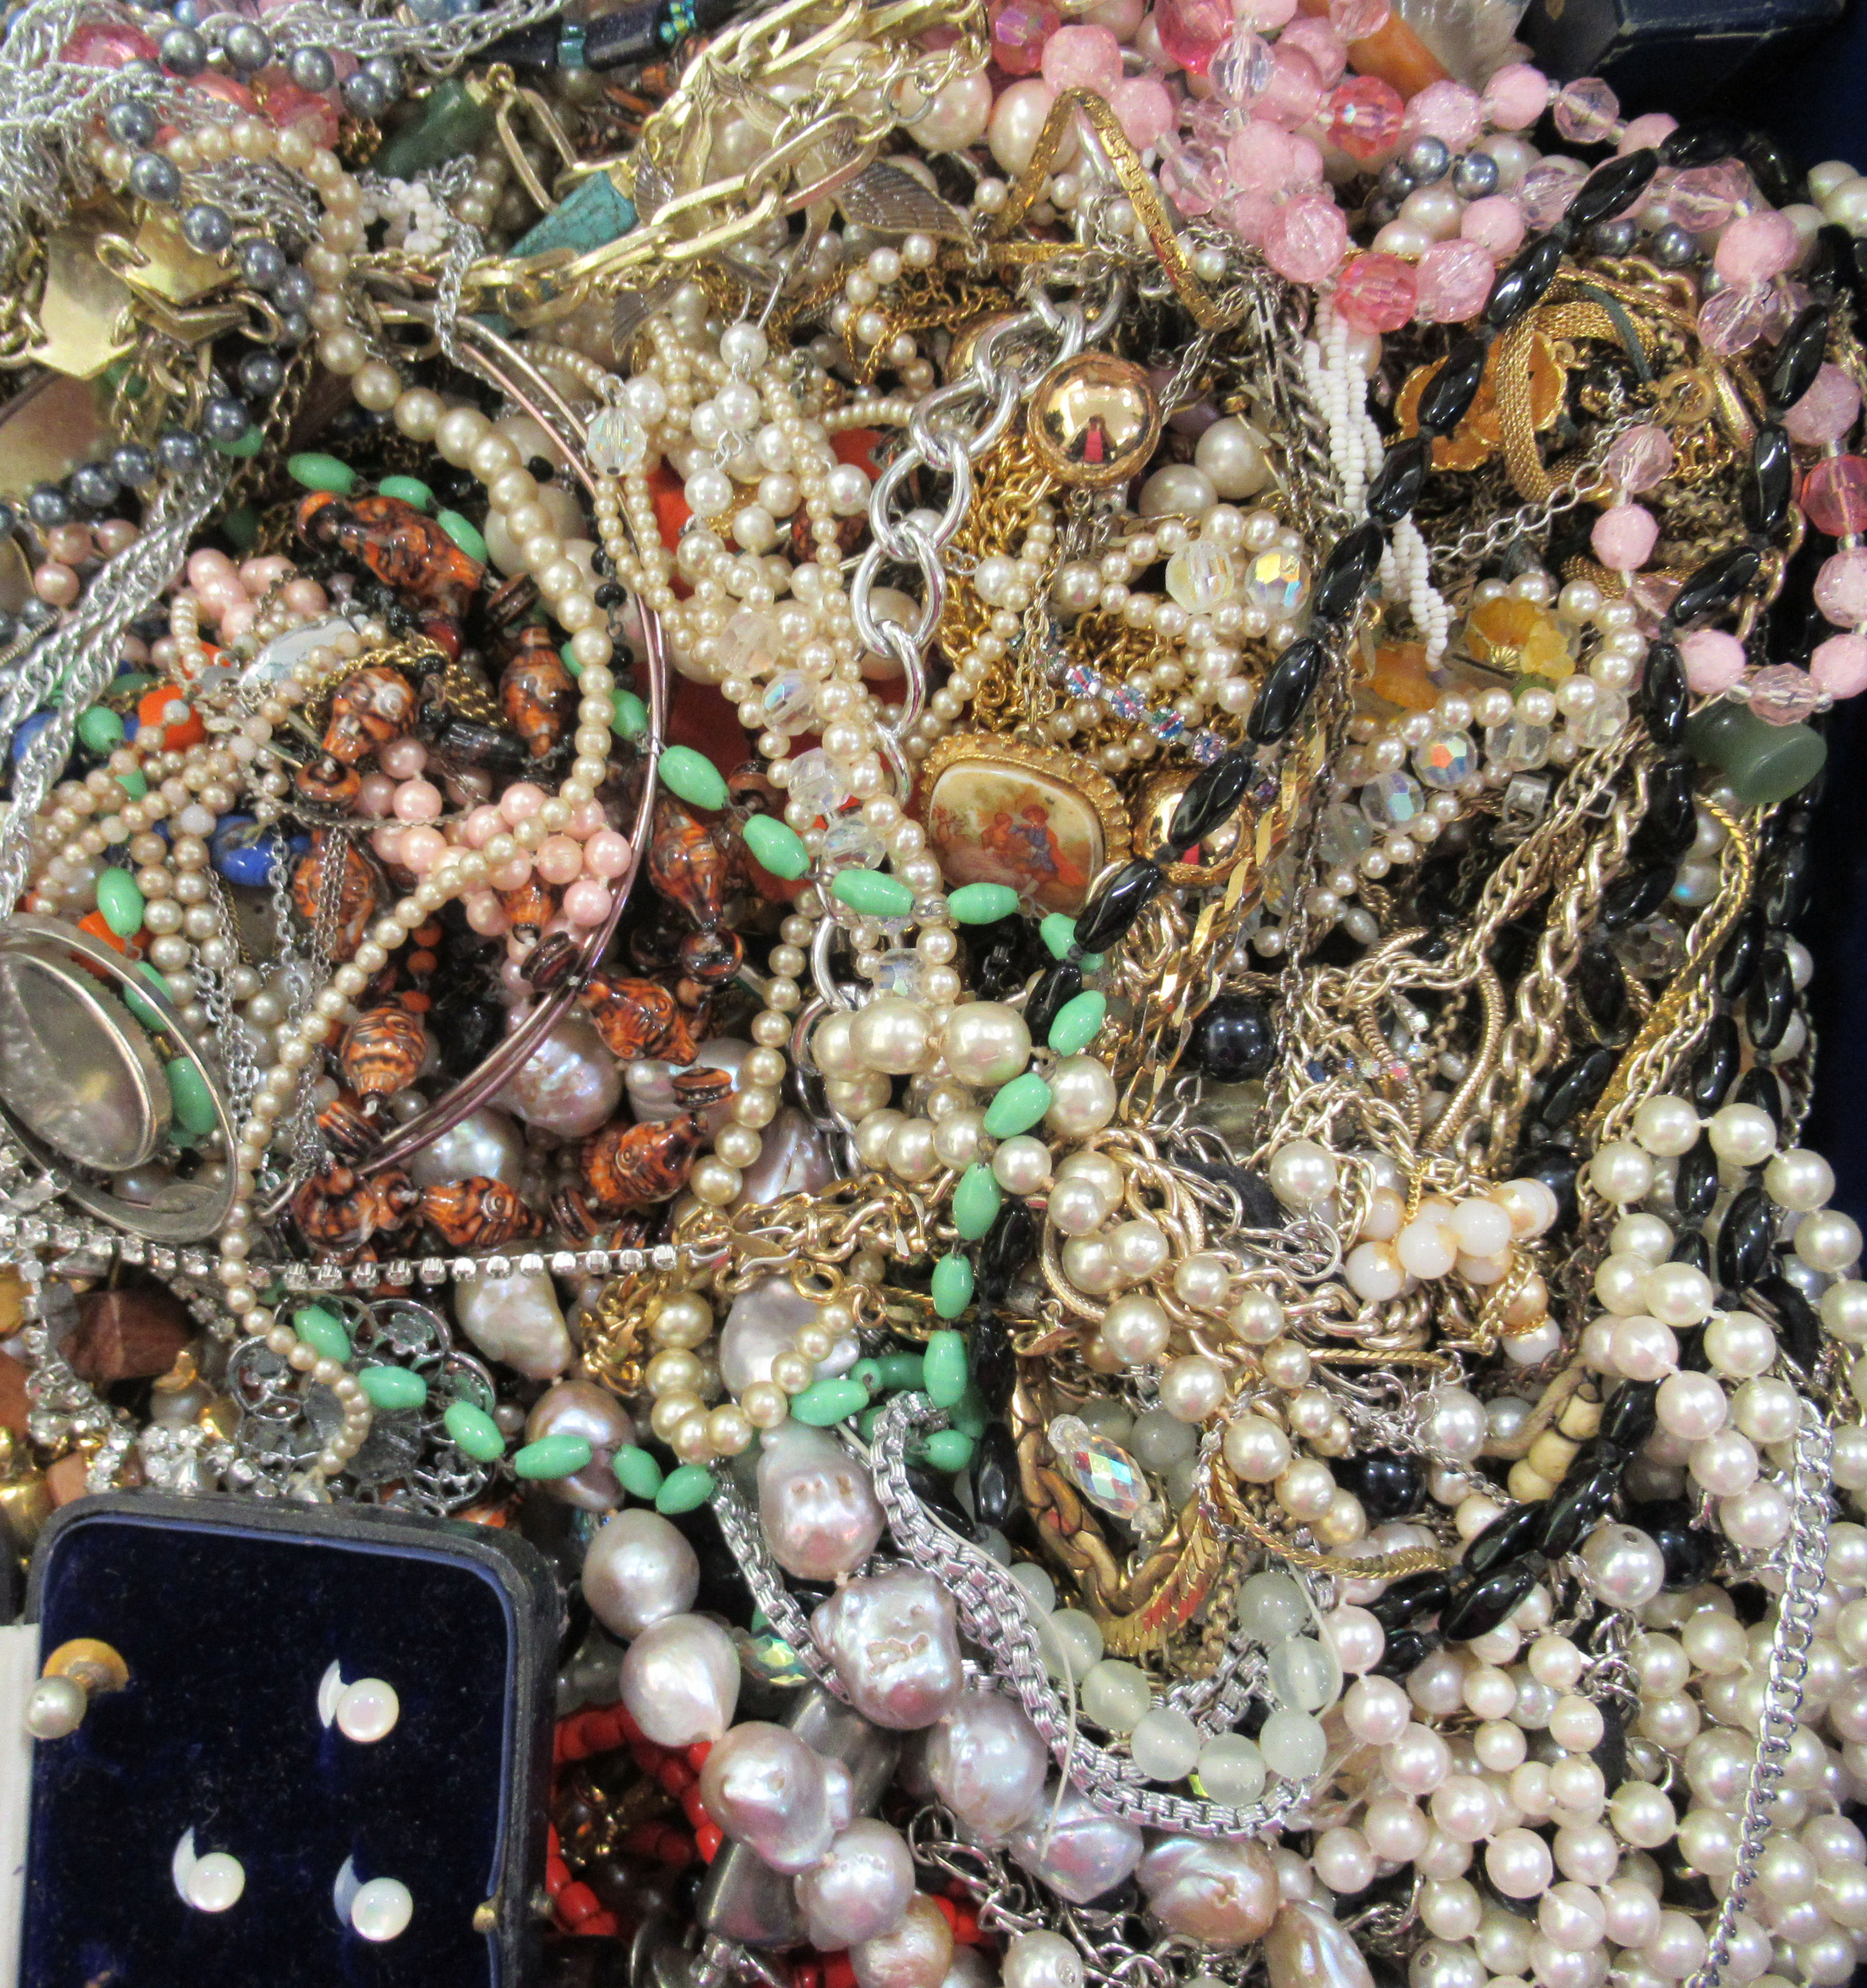 Costume jewellery: to include bangles, necklaces and brooches